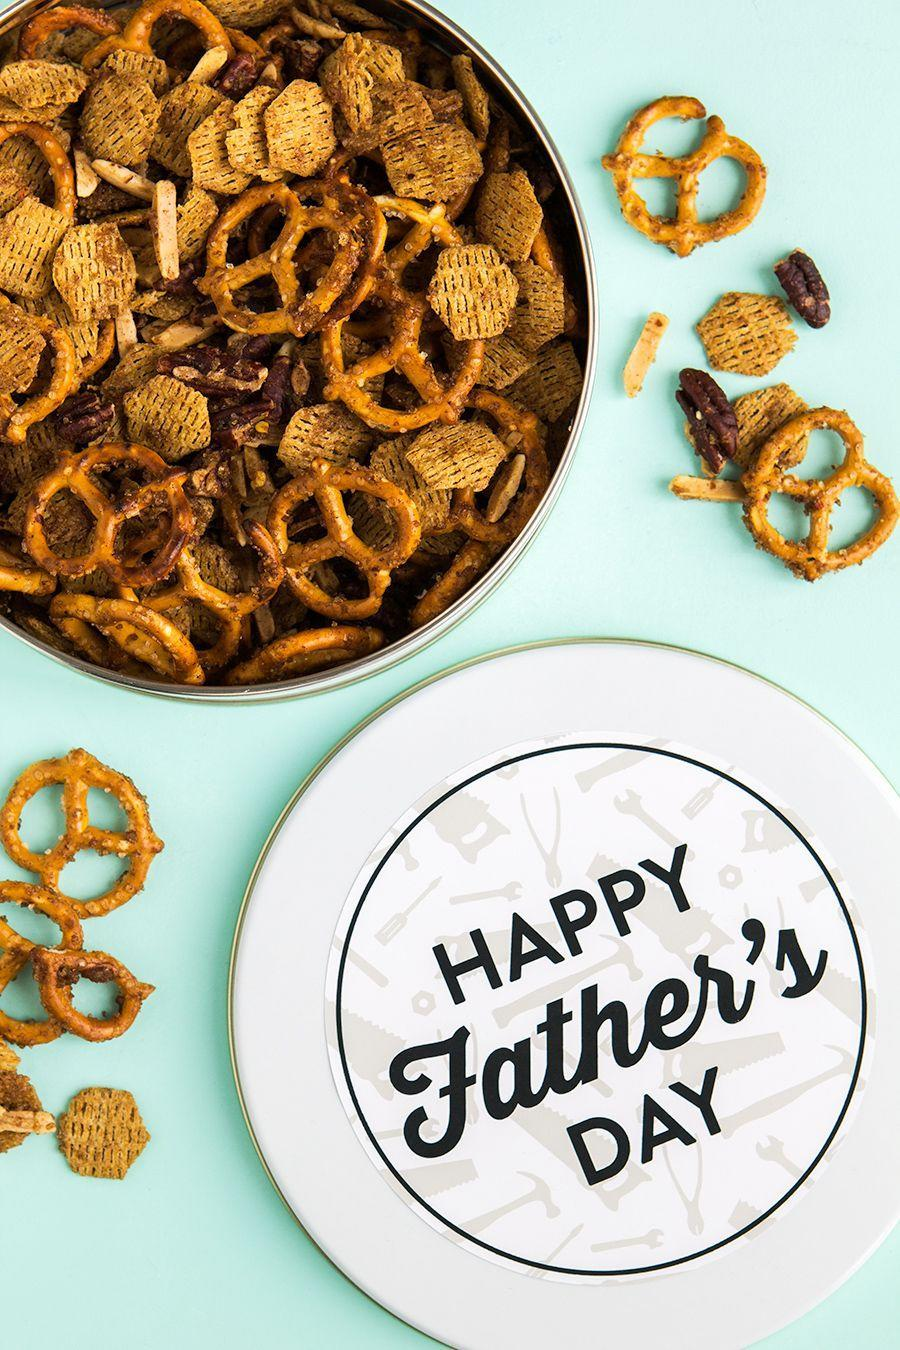 """<p>Make both the snack tin and the tasty mix that goes inside with just a few easy steps.</p><p><strong>Get the tutorial at <a href=""""https://sarahhearts.com/snack-mix/"""" rel=""""nofollow noopener"""" target=""""_blank"""" data-ylk=""""slk:Sarah Hearts"""" class=""""link rapid-noclick-resp"""">Sarah Hearts</a>.</strong></p>"""